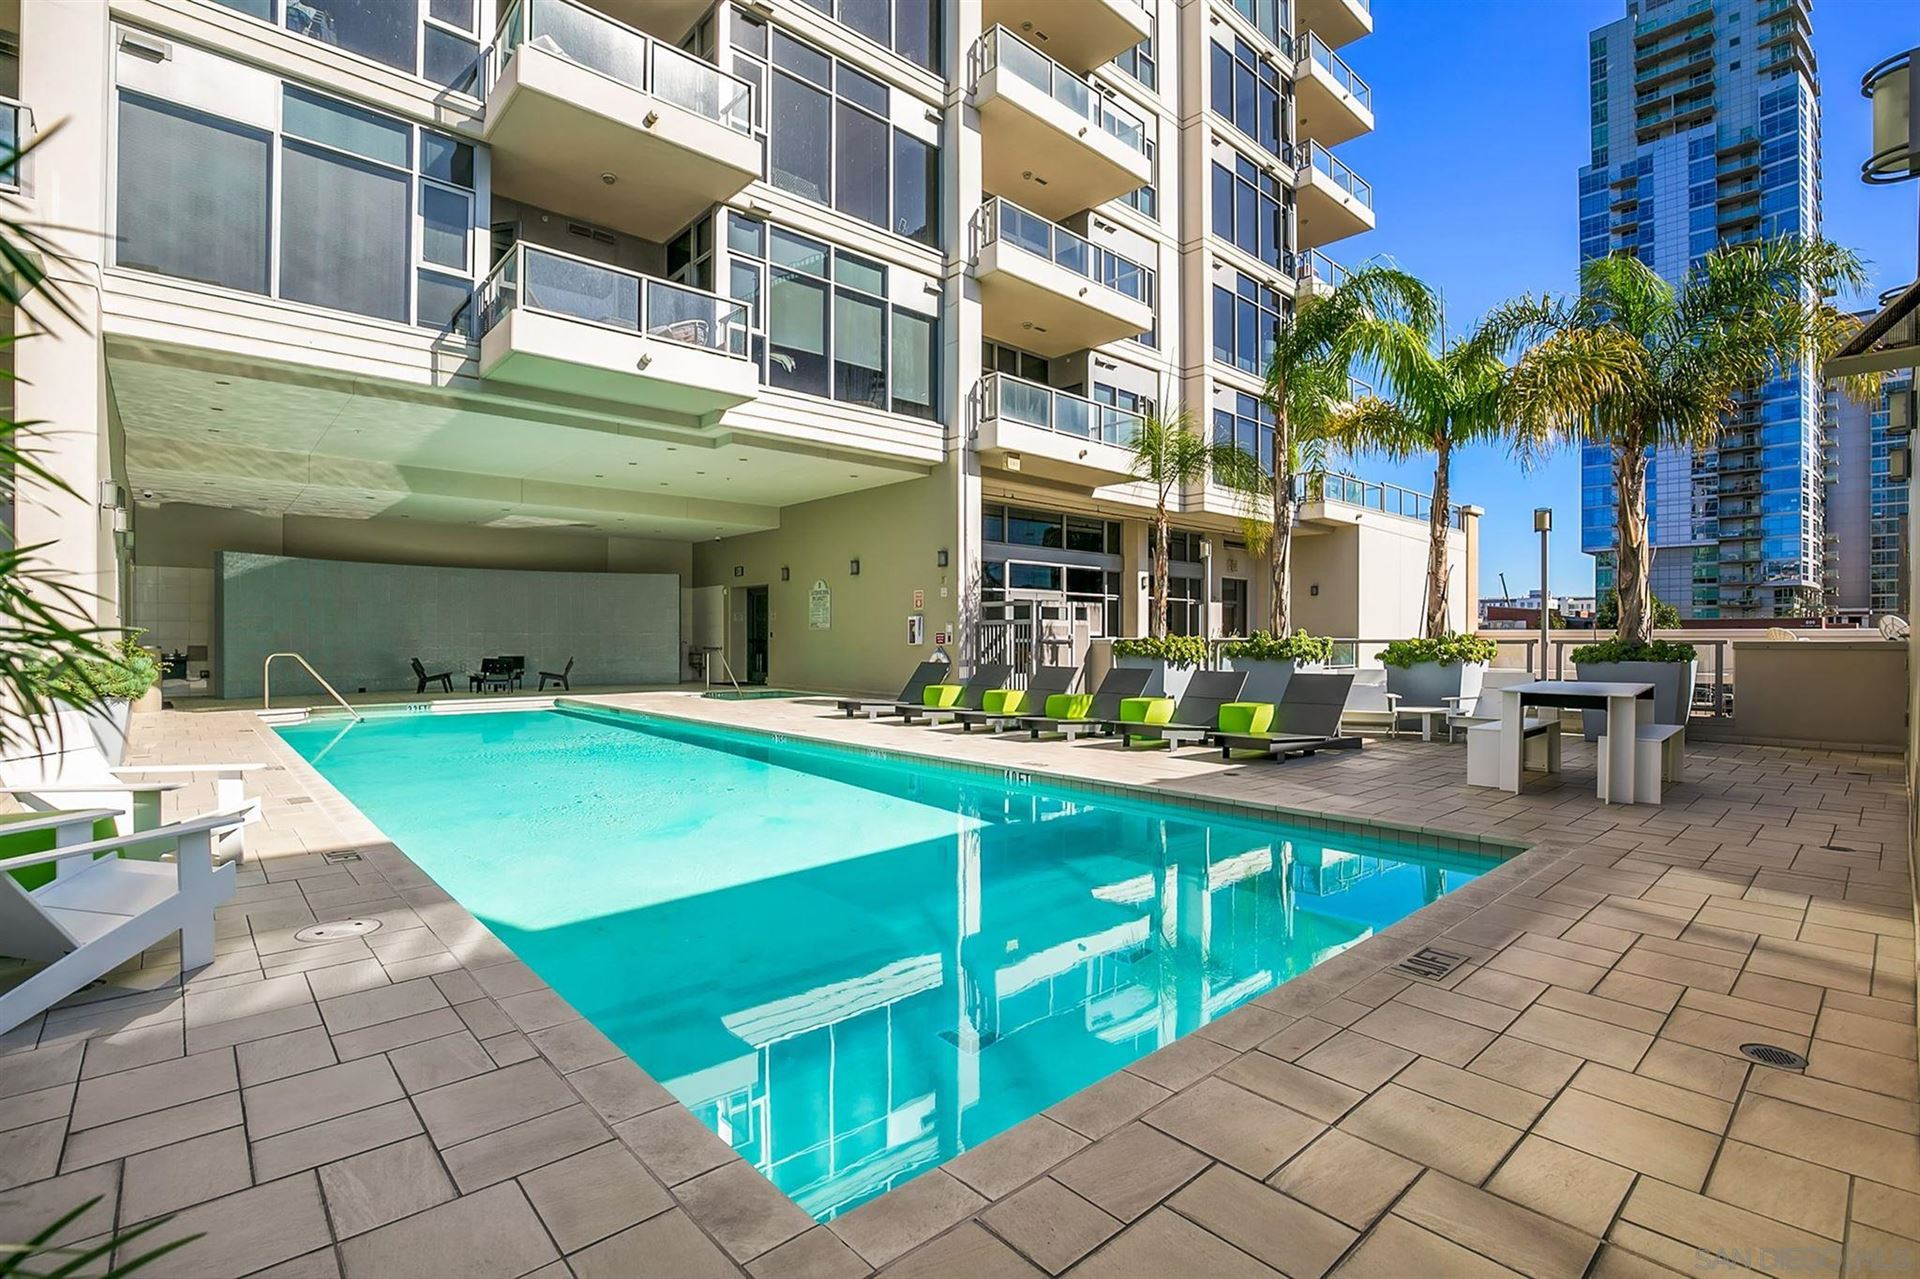 Photo of 575 6Th Ave #406, San Diego, CA 92101 (MLS # 210009577)